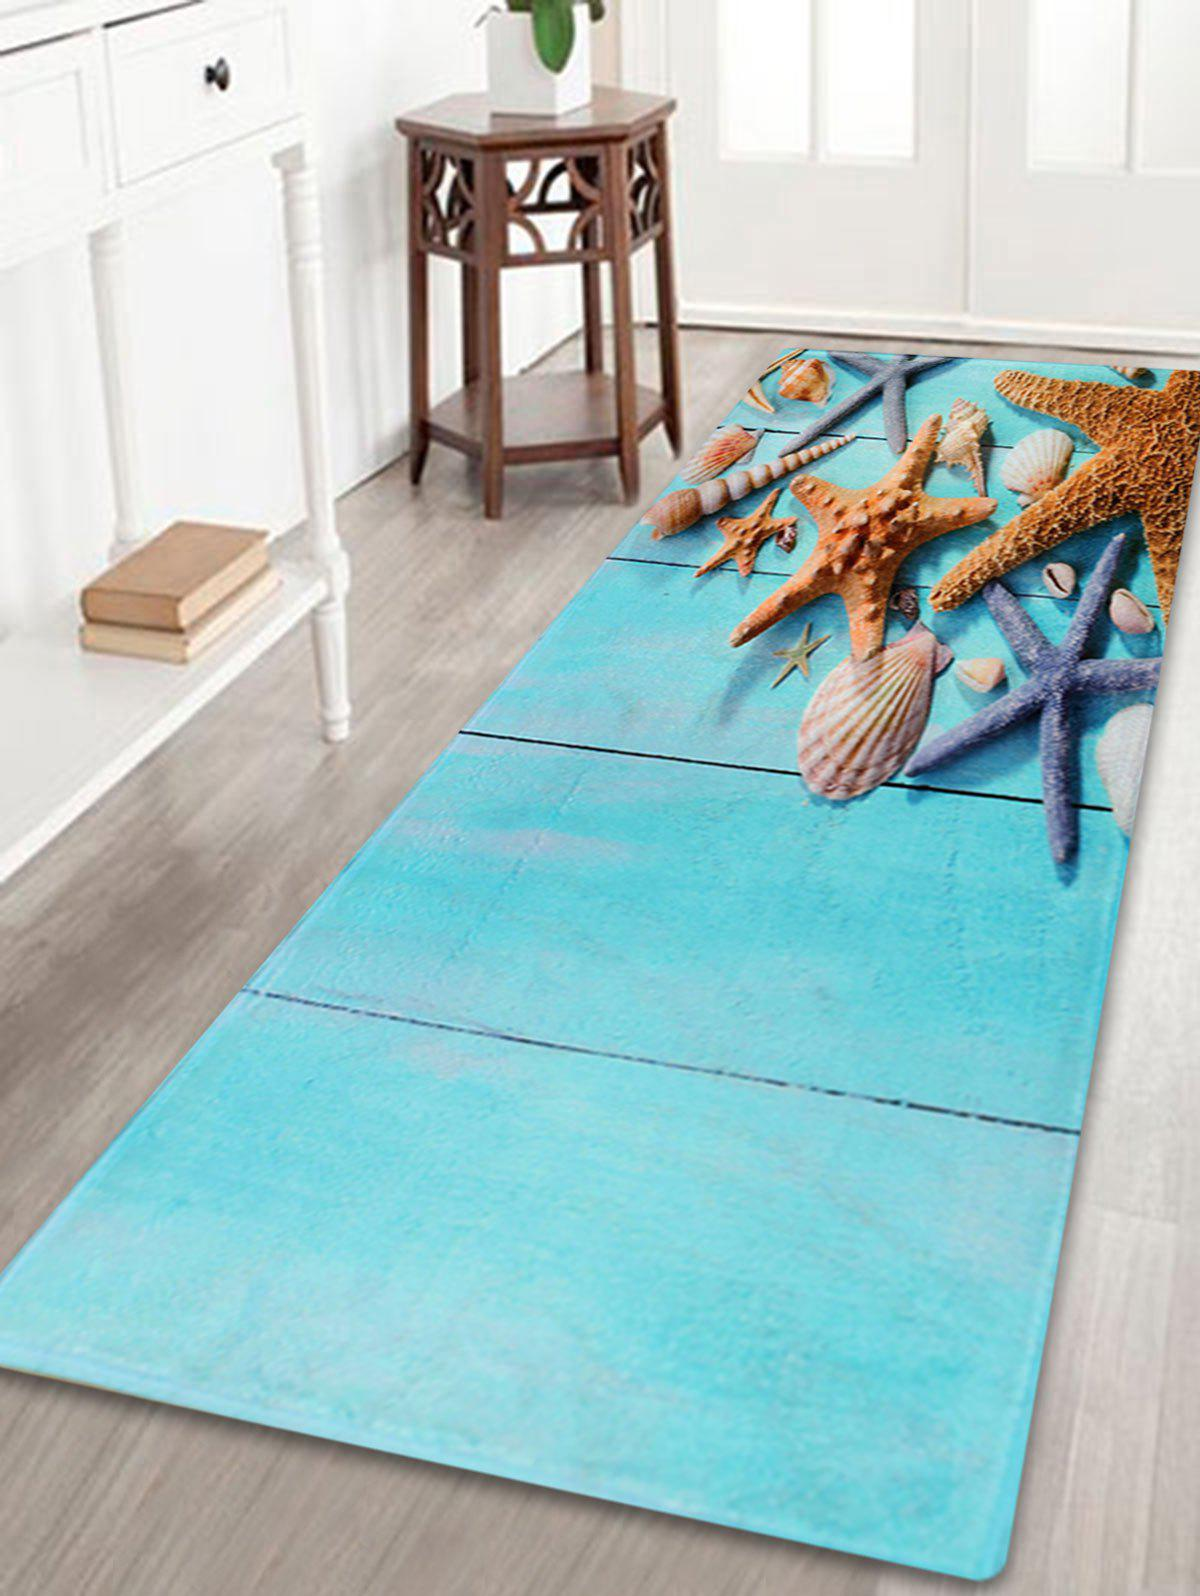 Larger Water Absorbent Starfish Plank Bath Rug soft absorbent letter star wars bath rug